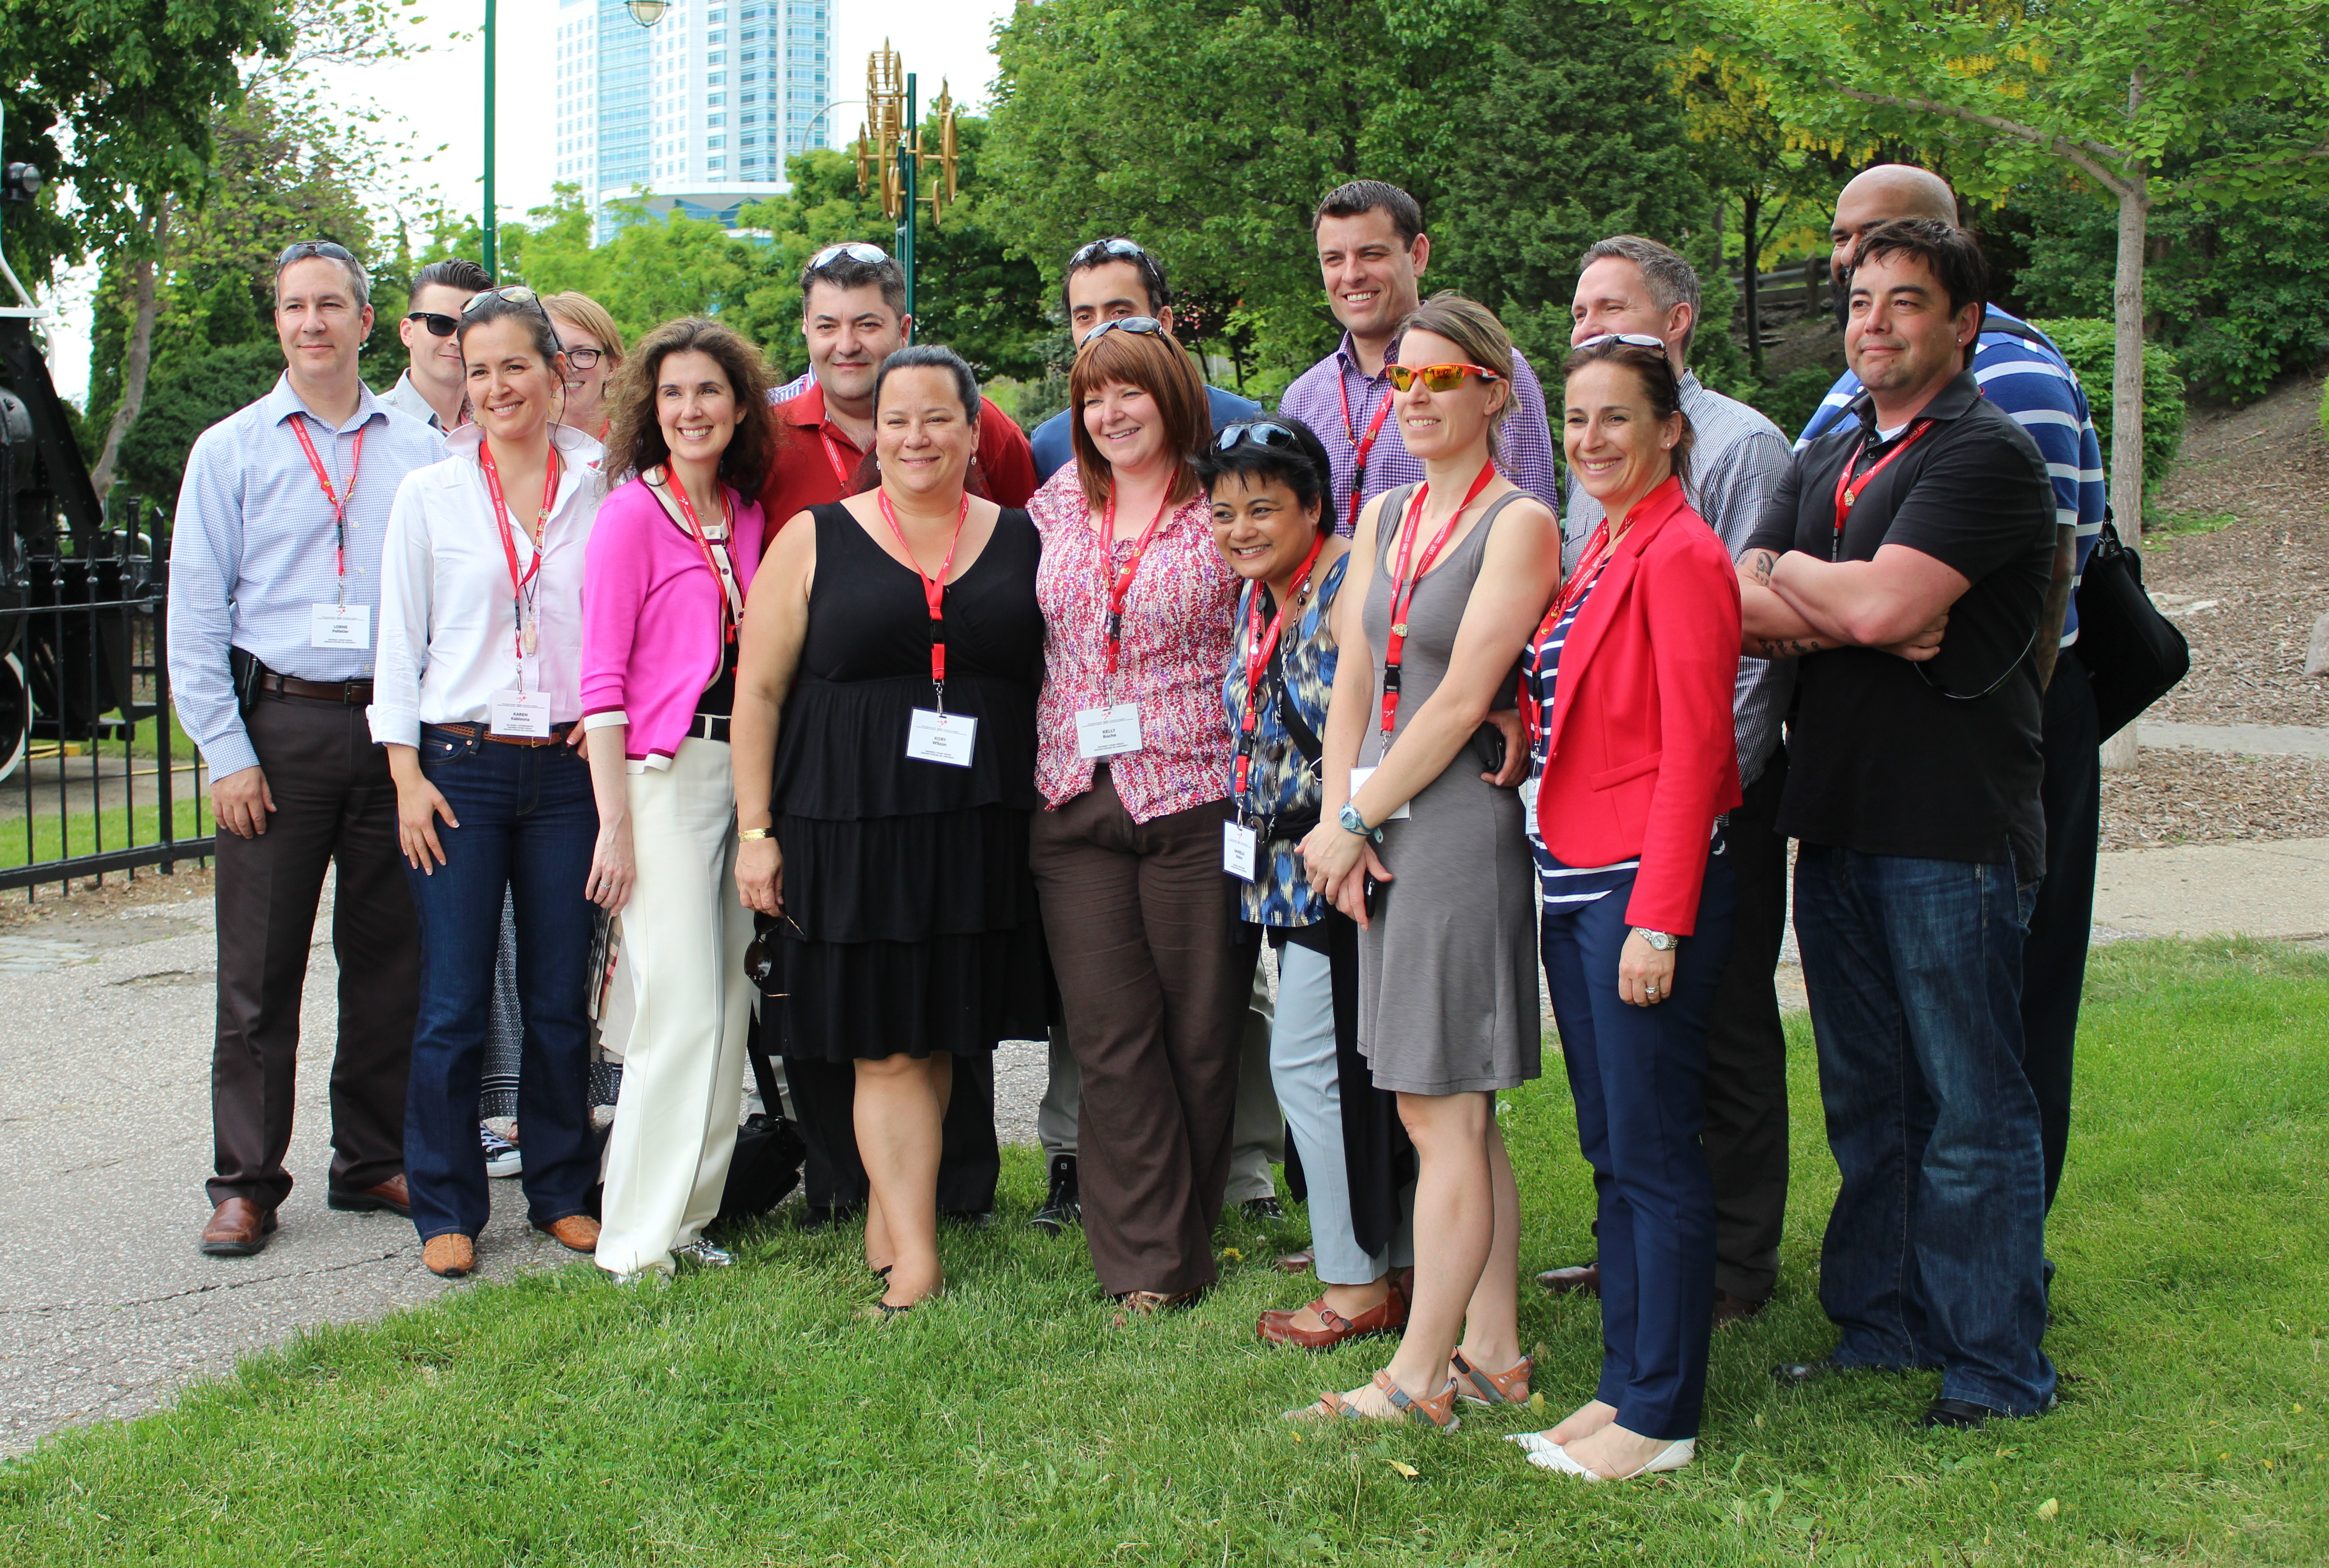 Professionals from various industries across Canada tour Windsor as part of the Governor Generals Canadian Leadership Conference, May 25, 2015. (Photo by Mike Vlasveld)